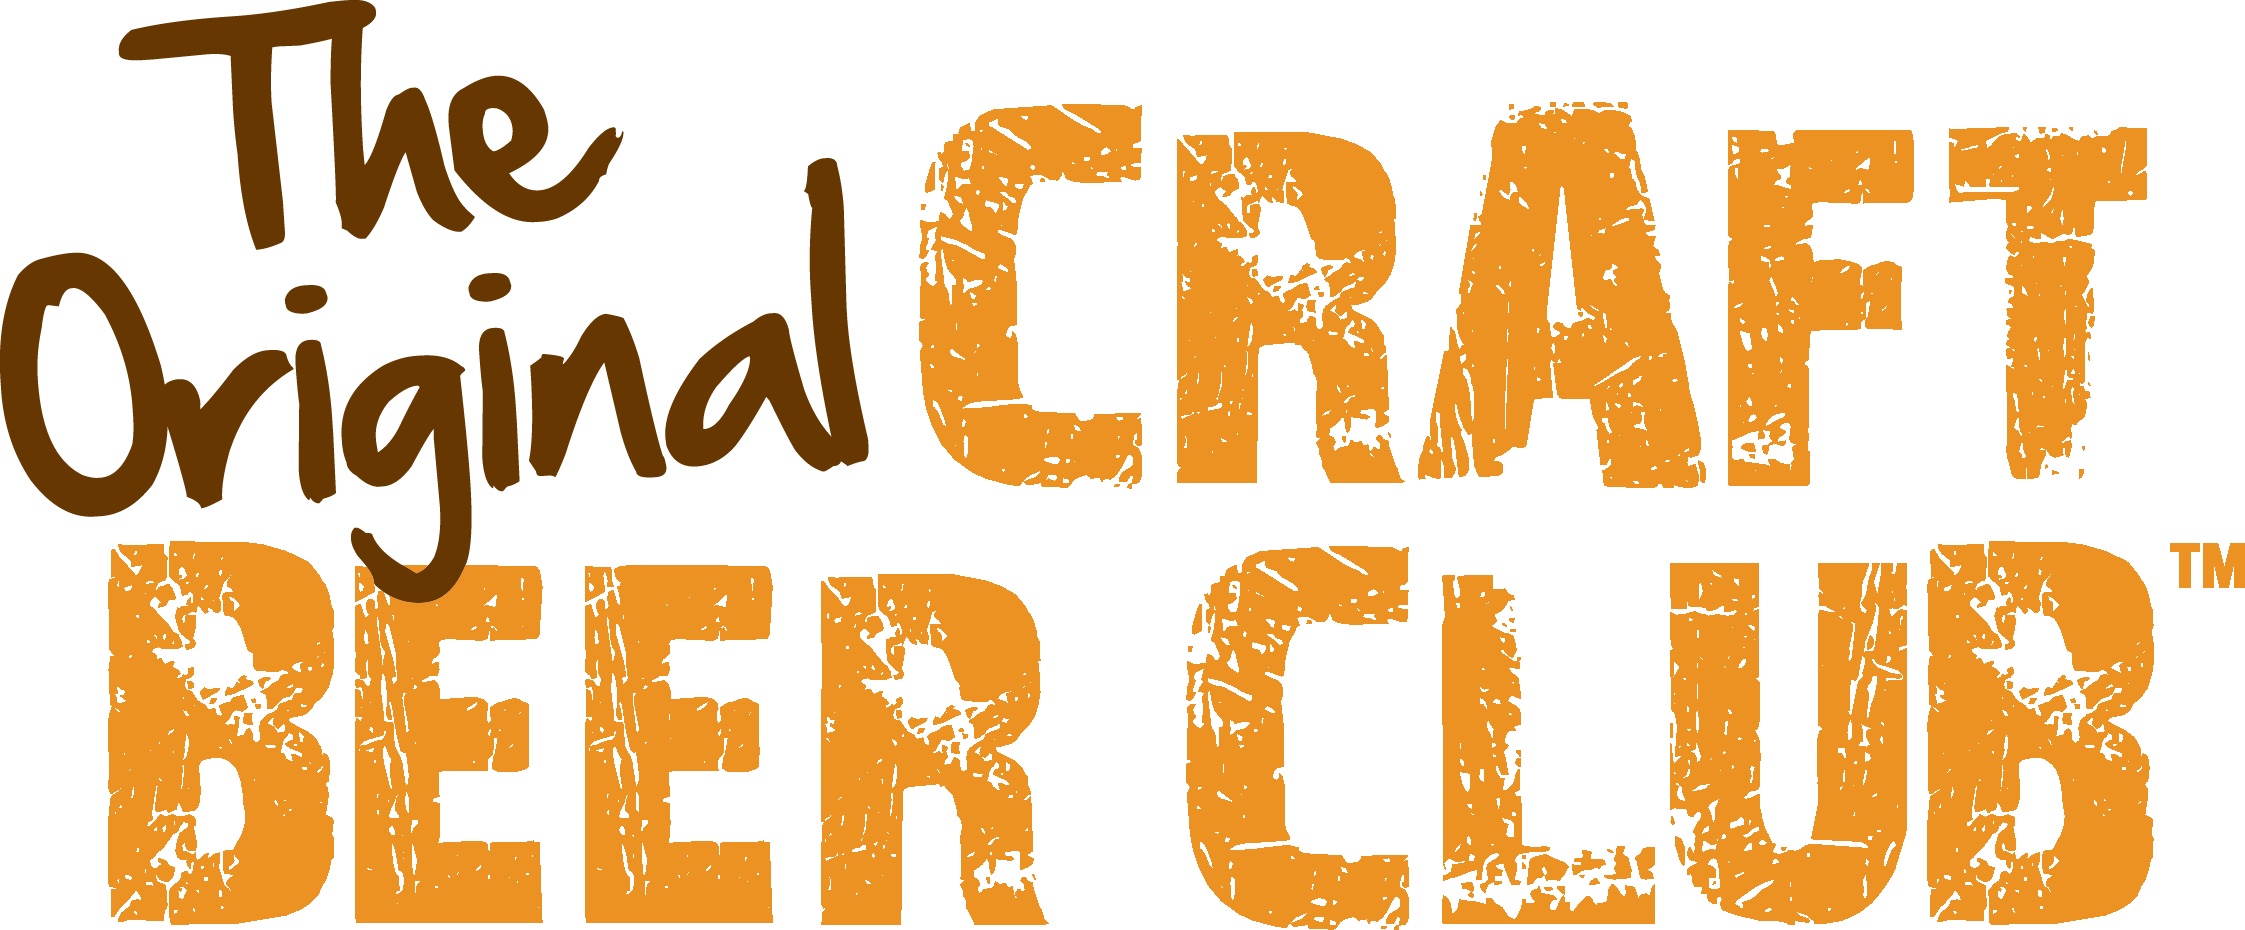 Beer of the month club craft beer the original craft for Craft of the month club